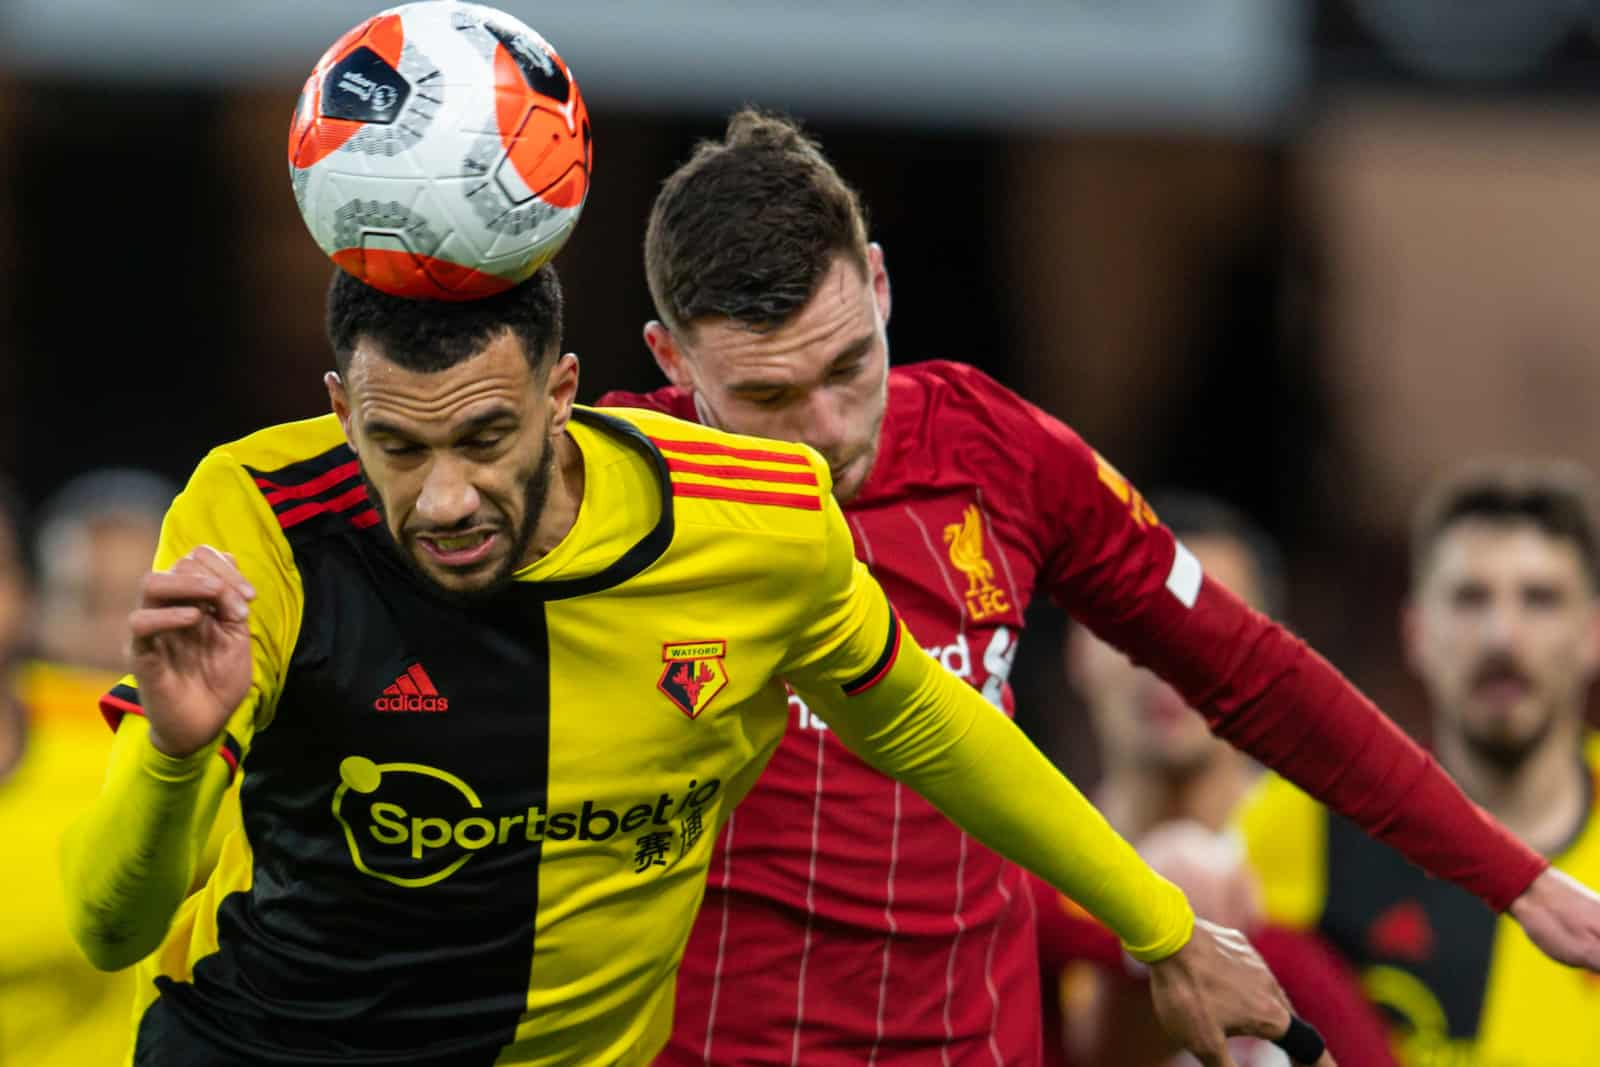 WATFORD, ENGLAND - Saturday, February 29, 2020: Watford's Étienne Capoue during the FA Premier League match between Watford FC and Liverpool FC at Vicarage Road. (Pic by David Rawcliffe/Propaganda